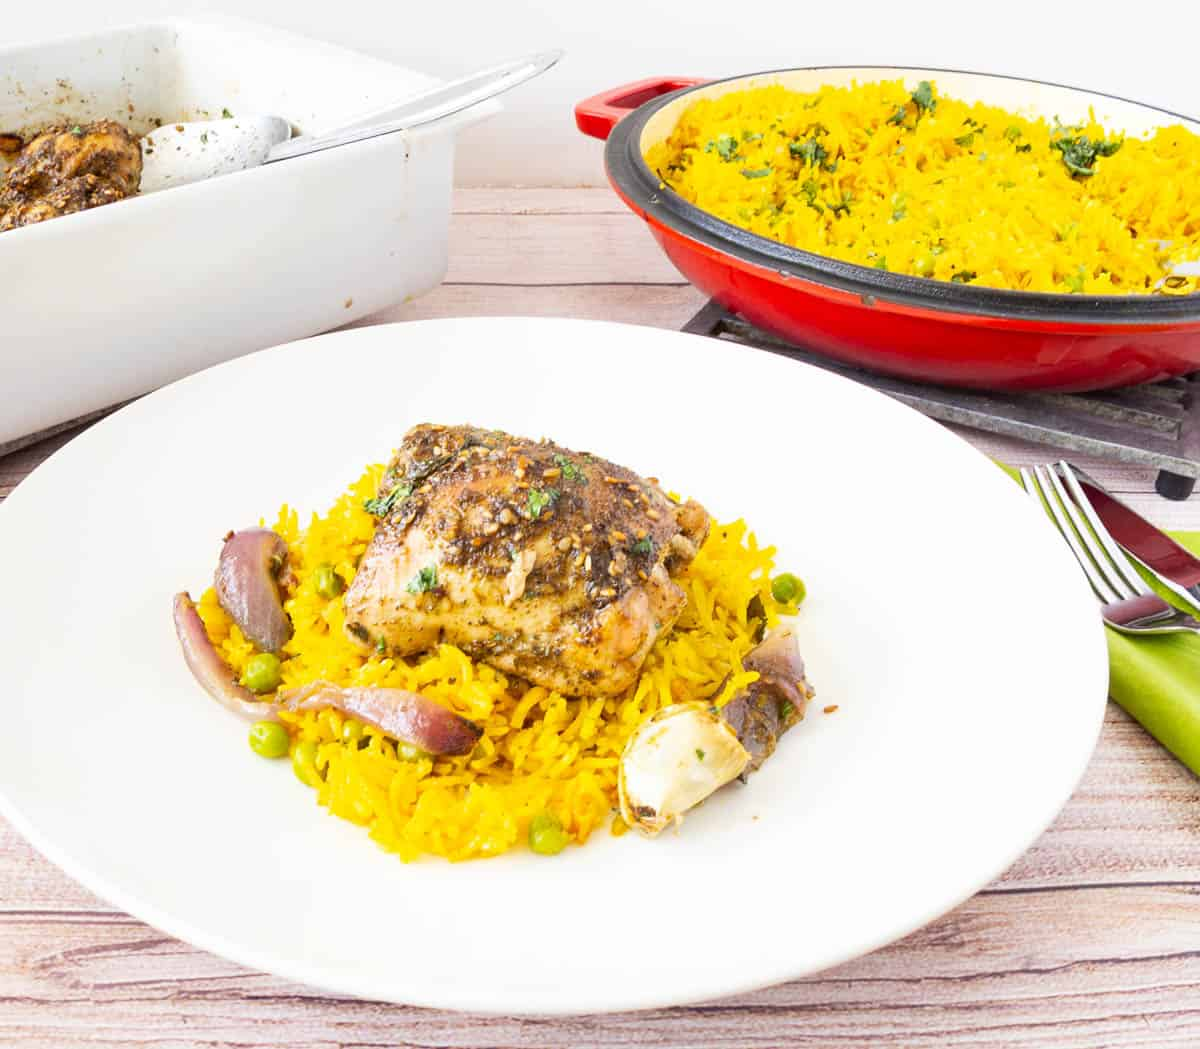 A plate of baked chicken with za'atar and yellow rice.